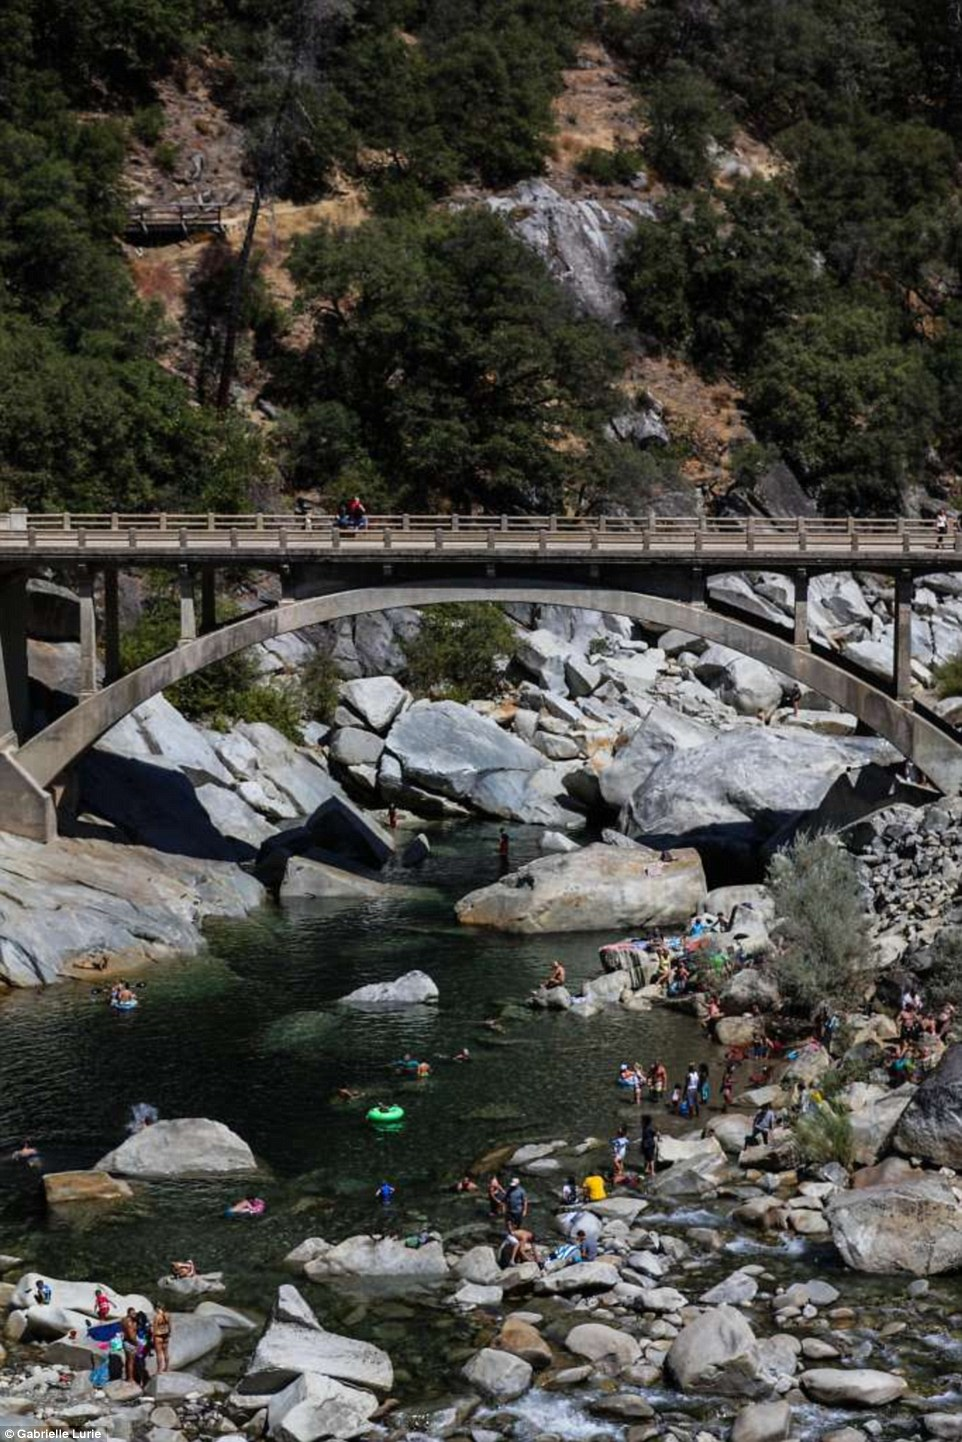 People swim under theSouth Yuba River Bridge in Nevada City, California in September 2016, as many rocks are exposed due to the low water levels